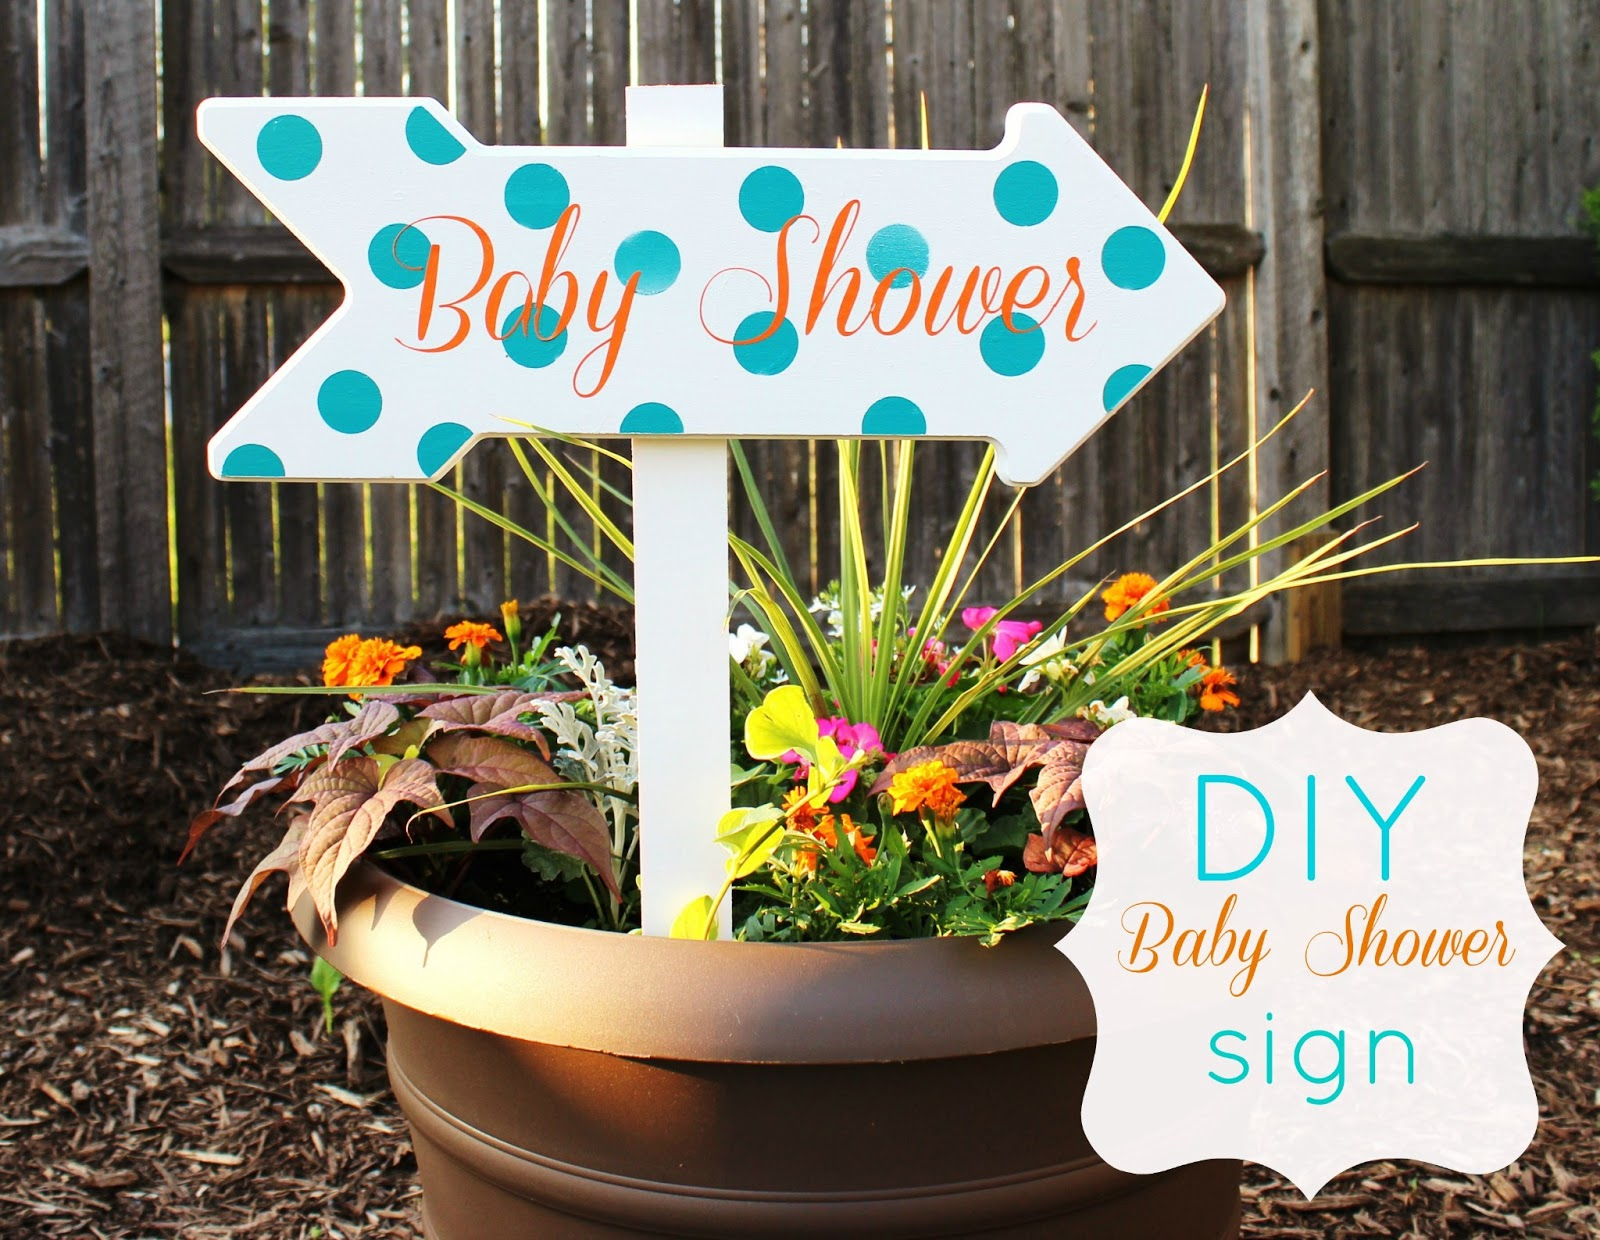 DIY Baby Shower Wood Sign | Delightfully Noted